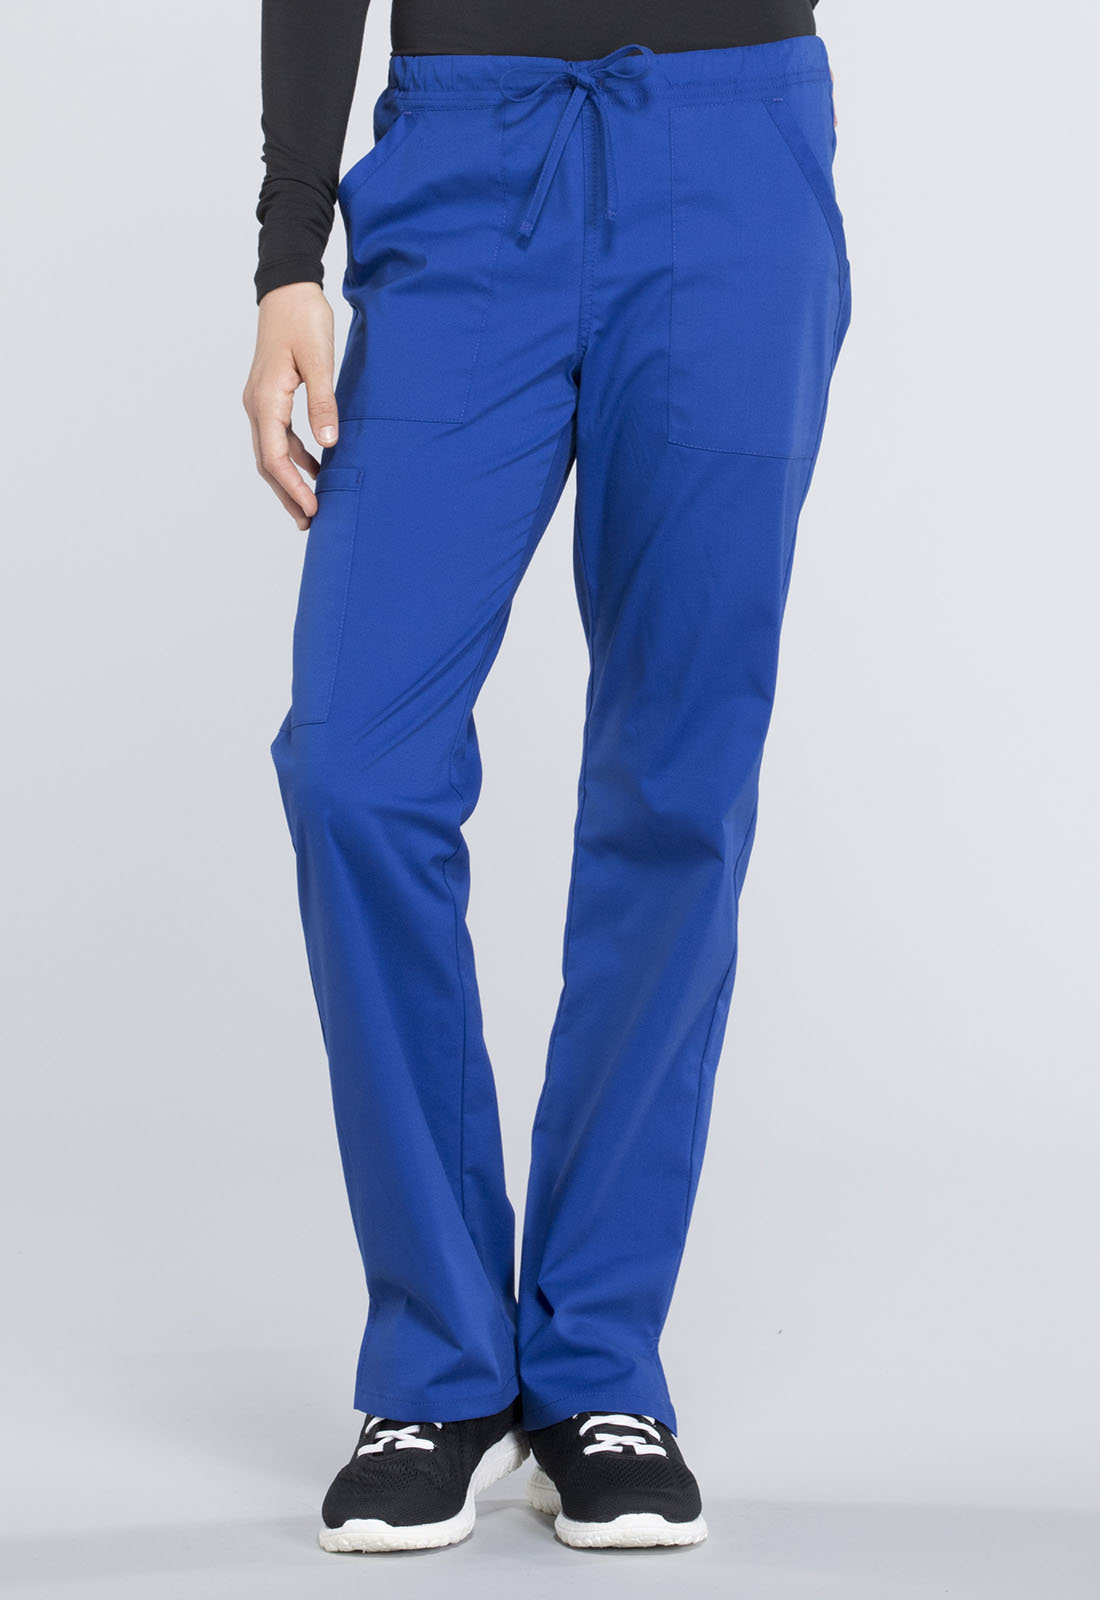 d6b68f68173 Cherokee Workwear. WW Professionals Mid Rise Straight Leg Drawstring Pant  in Galaxy Blue (Petite)